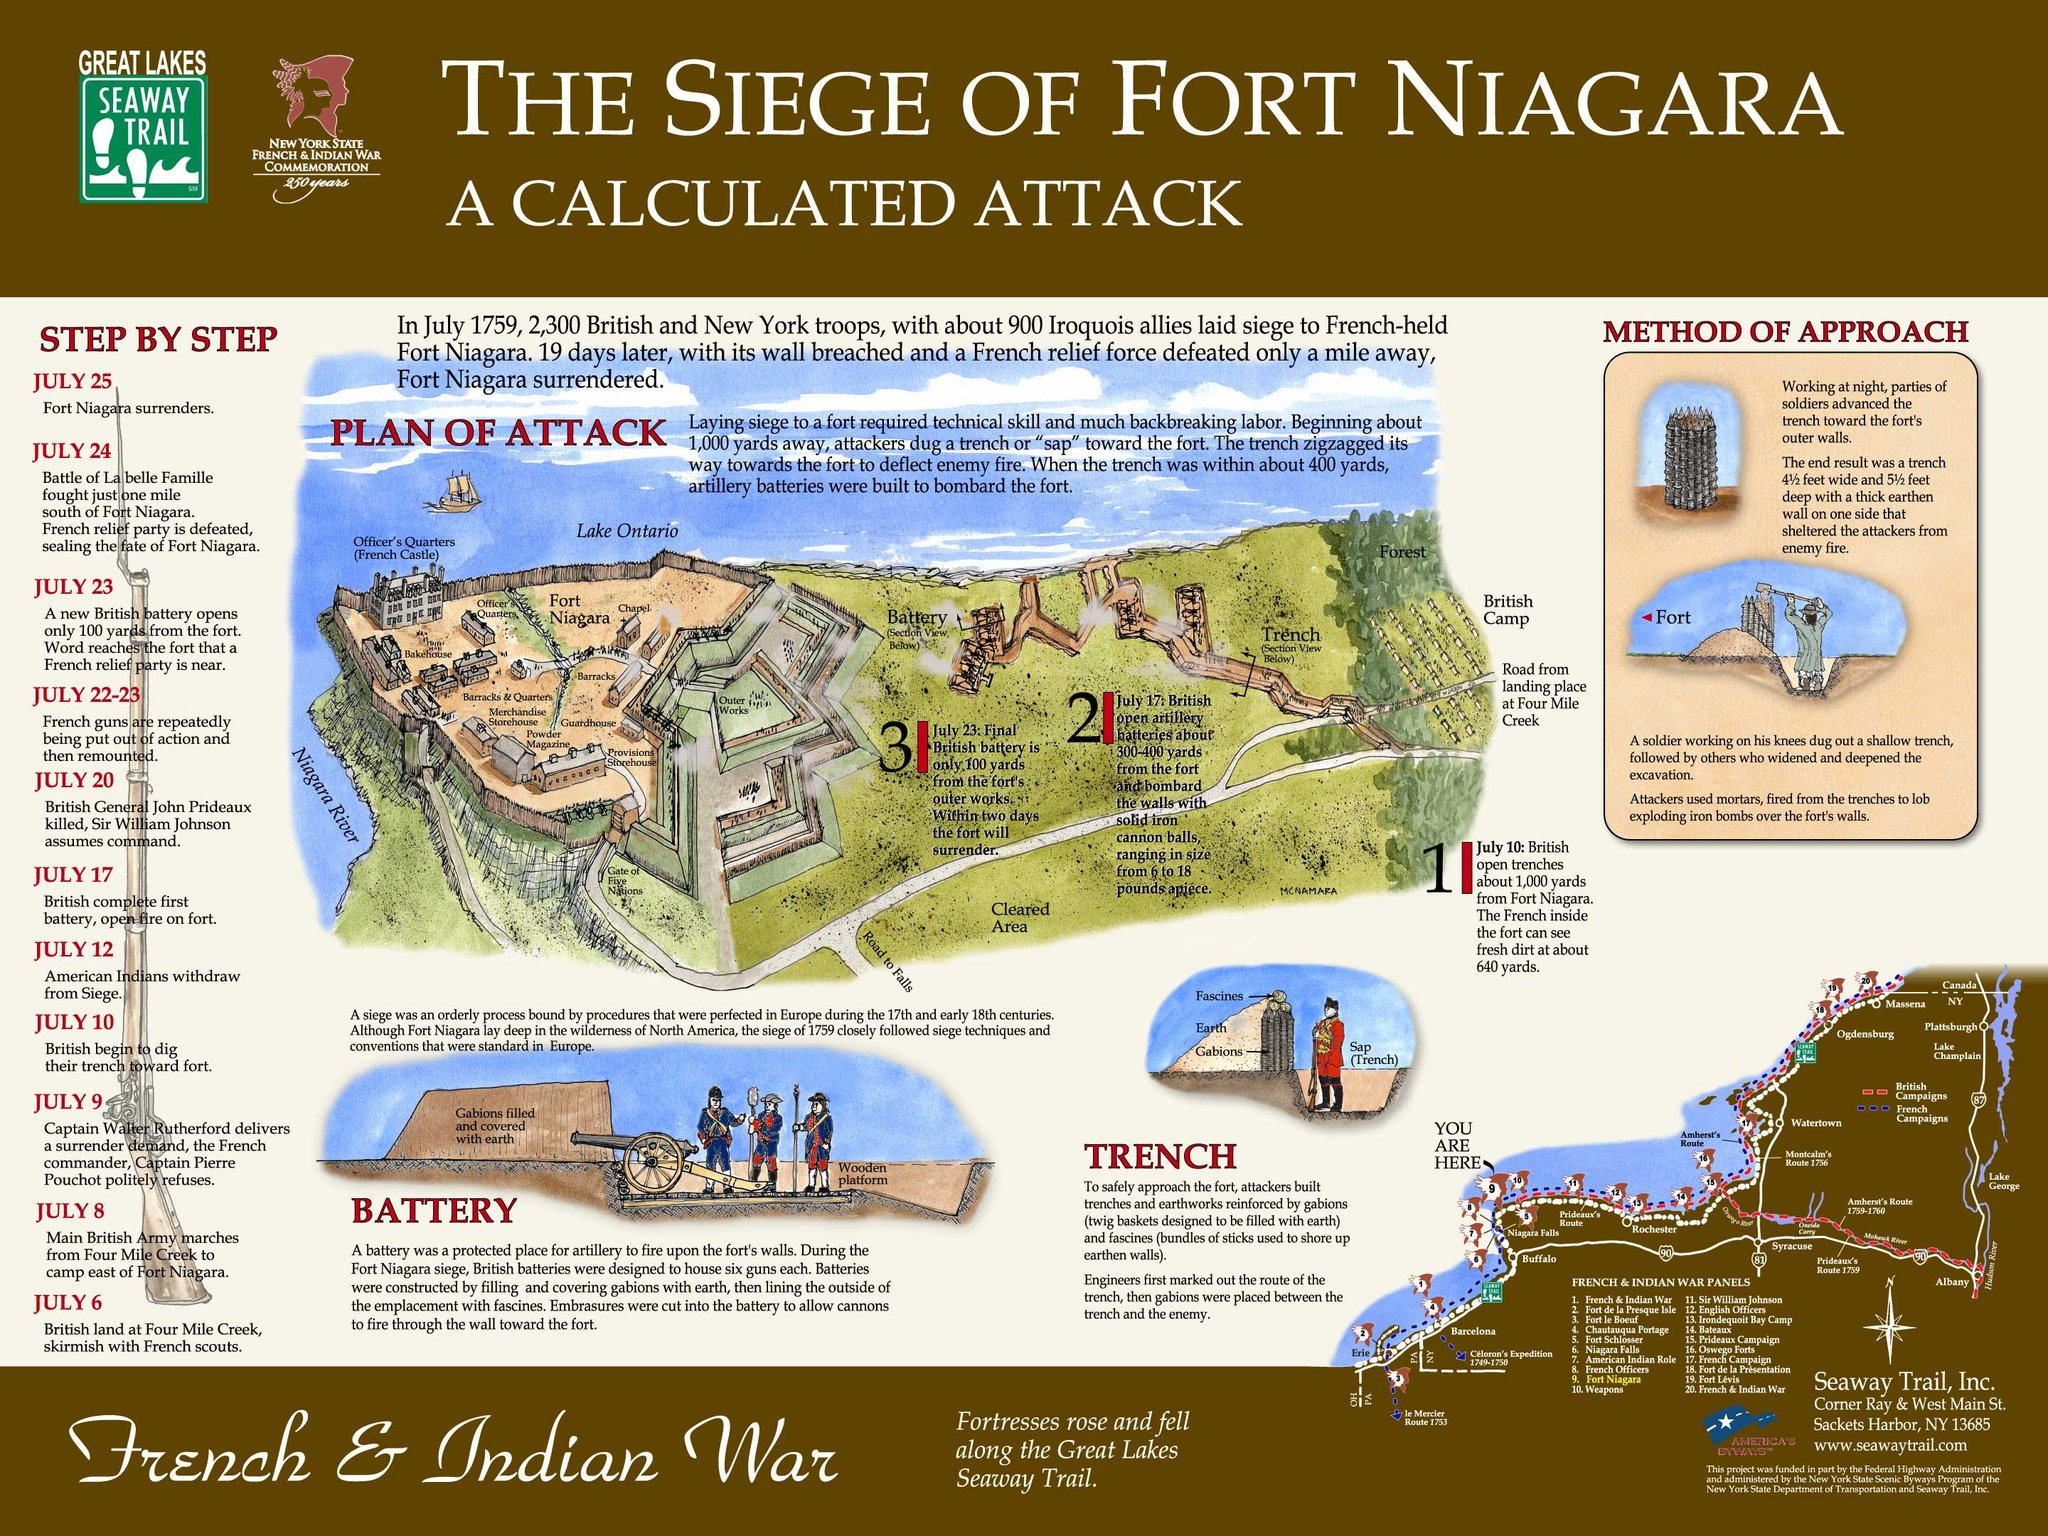 July 9, 1759: British forces work on extending their siege trenches closer toward Ft. Niagara. They had landed near Niagara at Four Mile Creek on July 6 after successfully navigating Lake Ontario undetected. https://t.co/VEsv1JQJBy